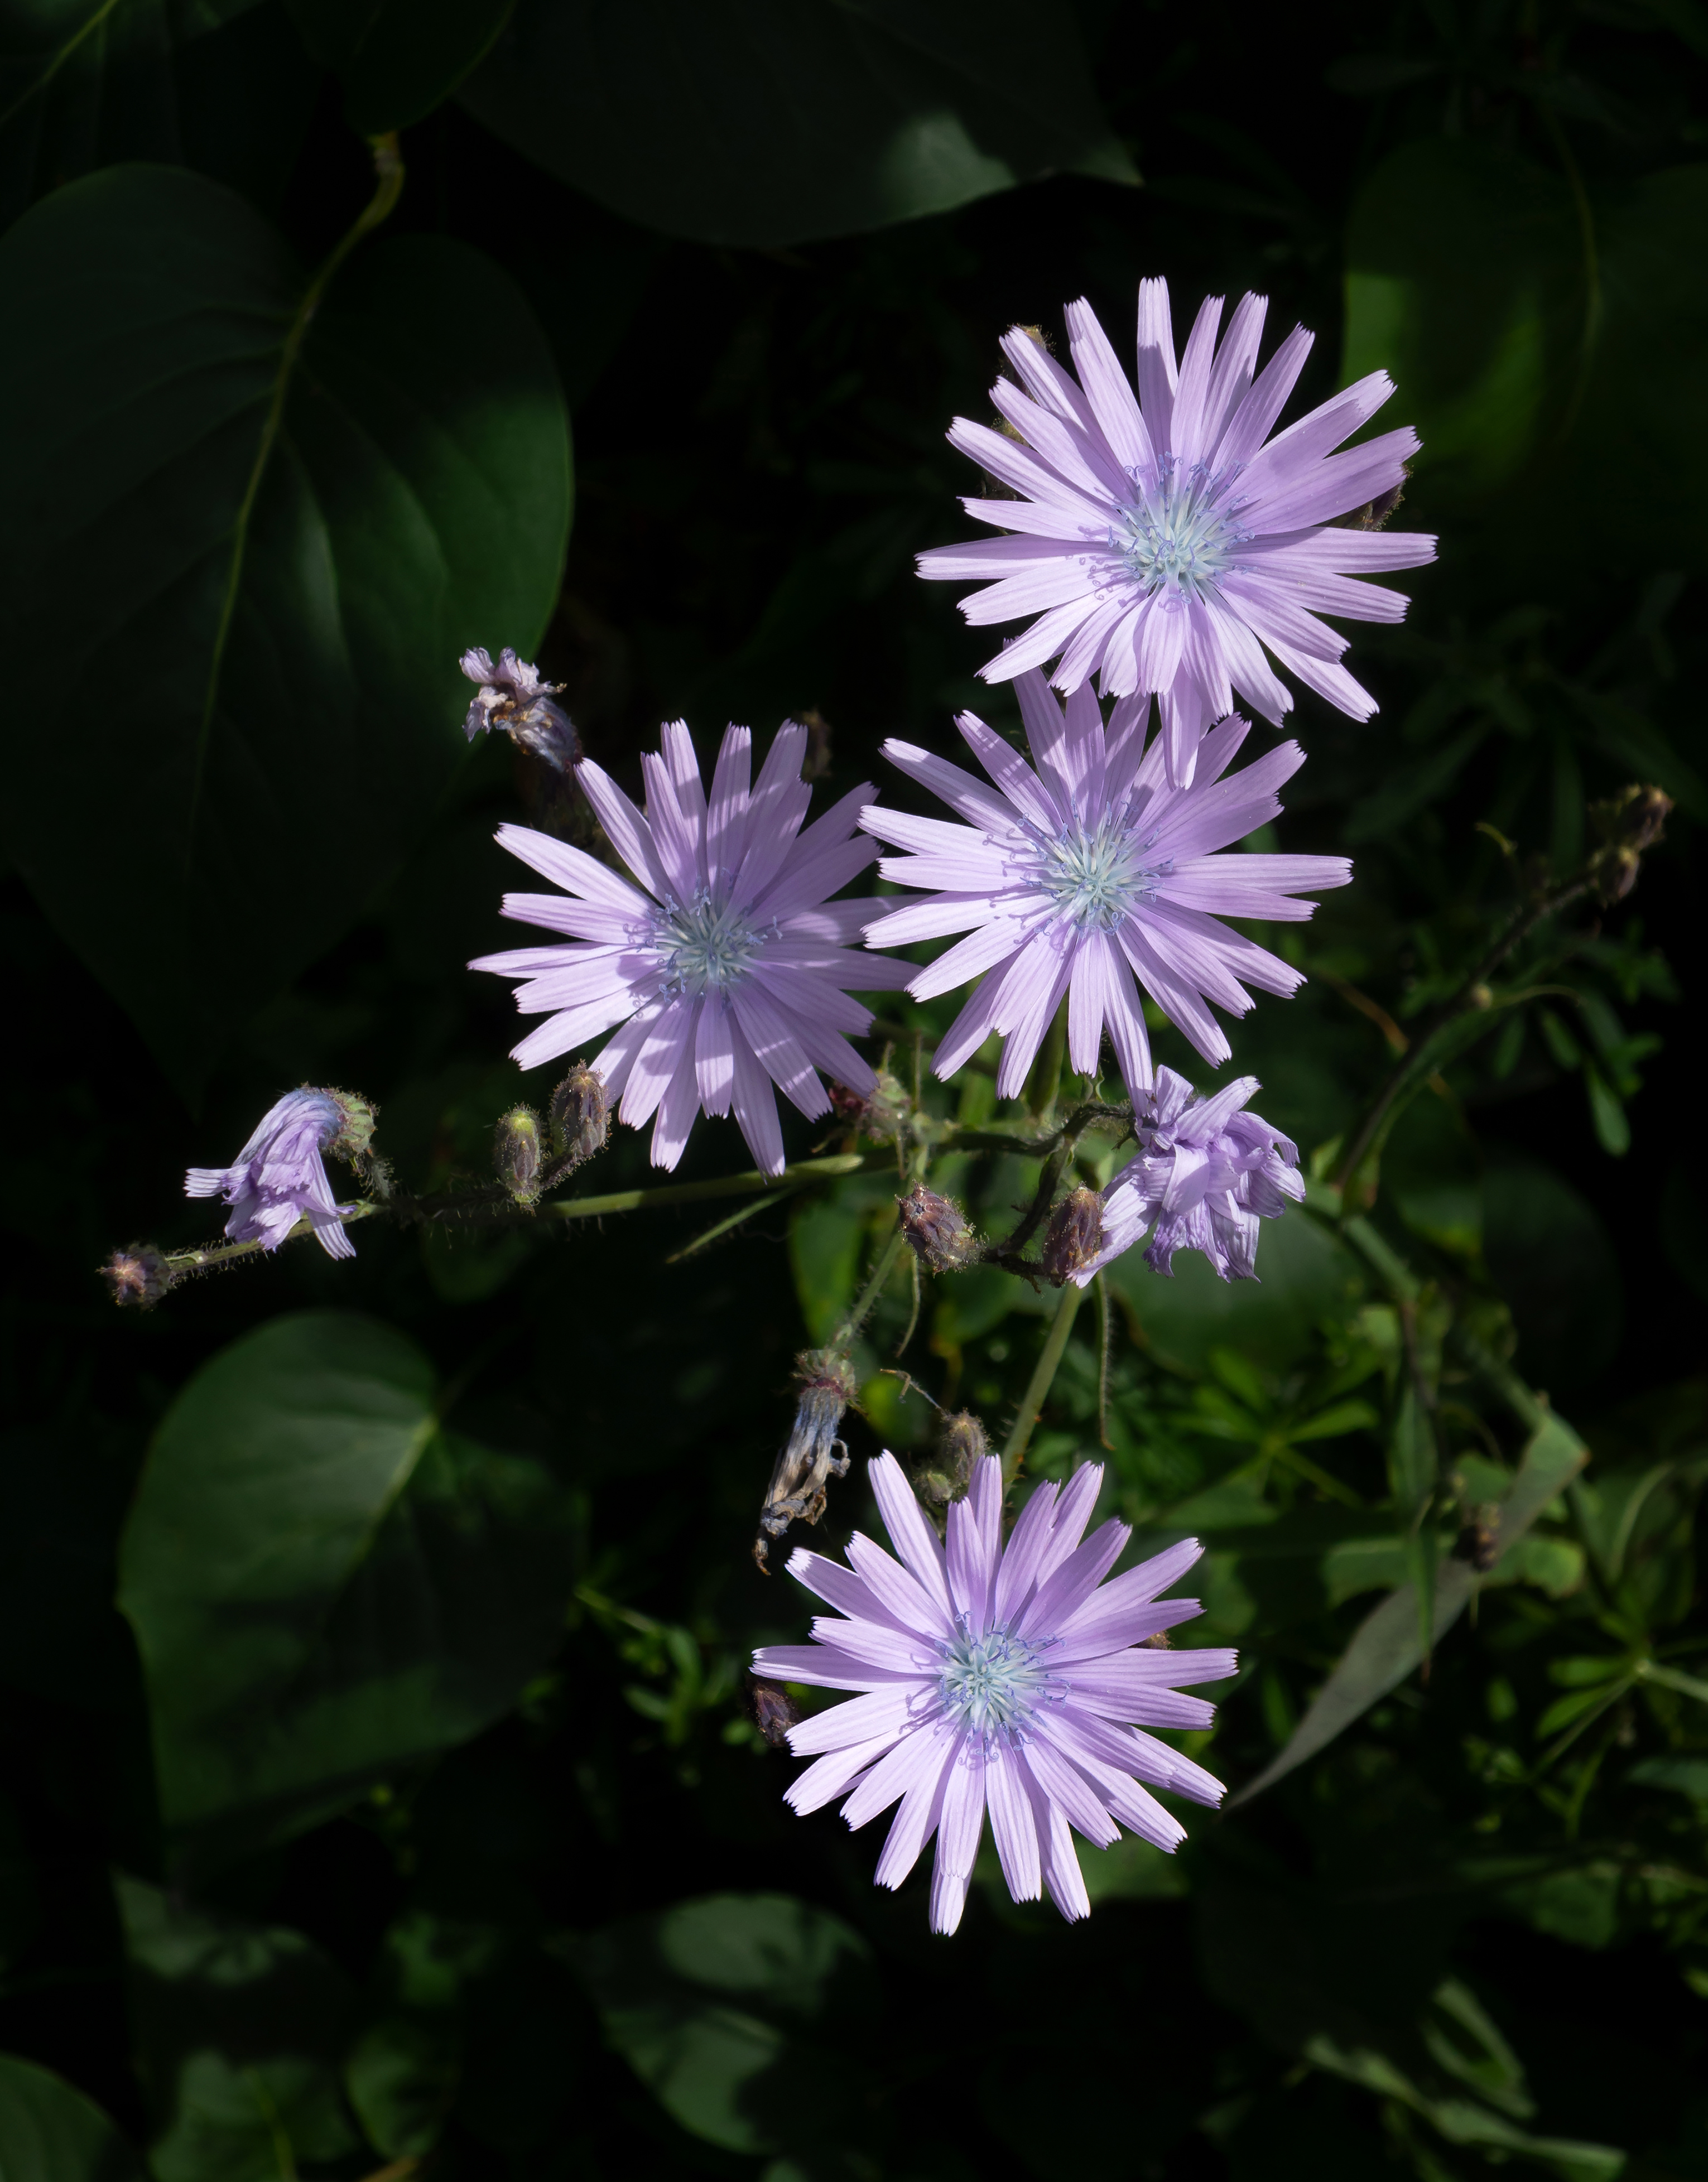 A photo of four chicory flowers blooming in a patch of sunlight. The chicory flowers are a pale blue-purple.